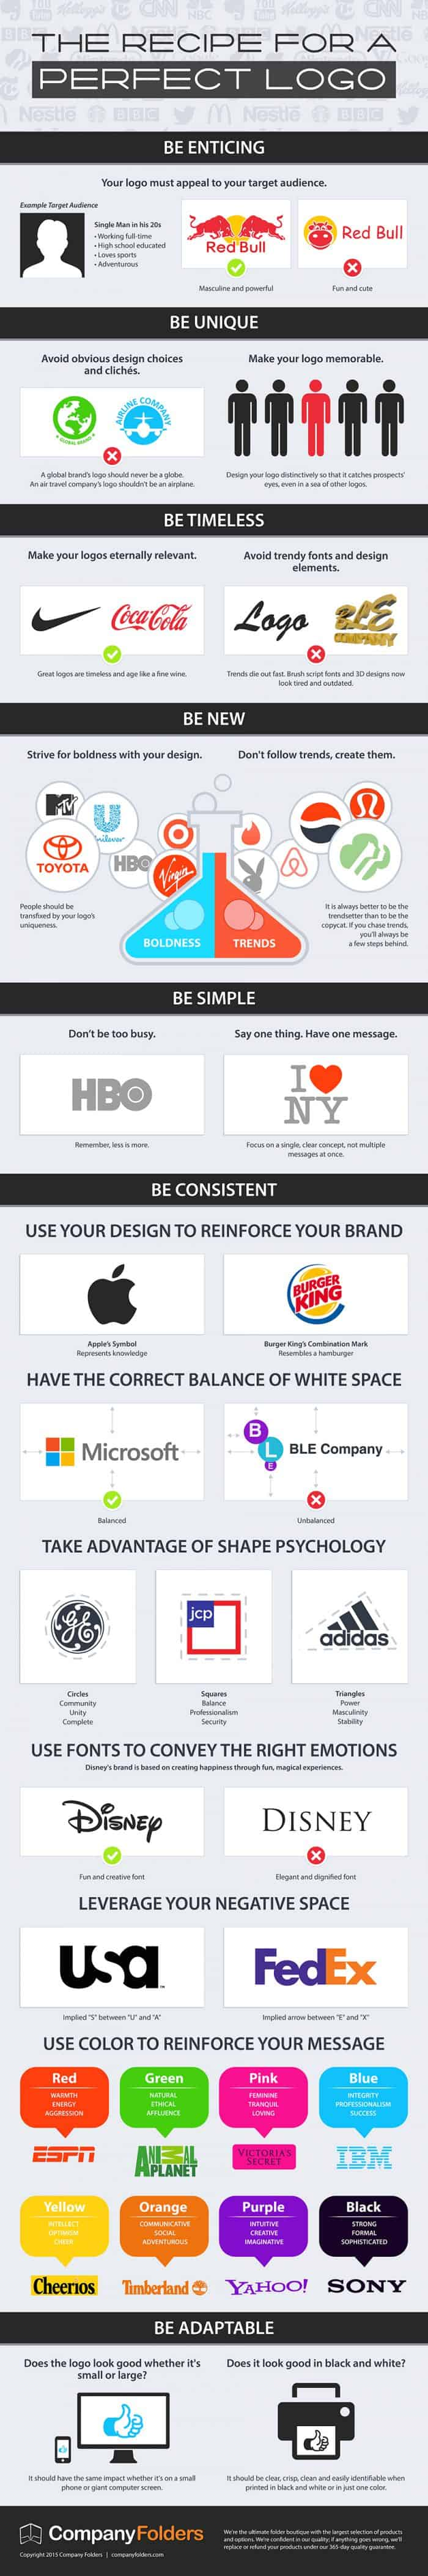 Recipe For The Perfect Logo Infographic